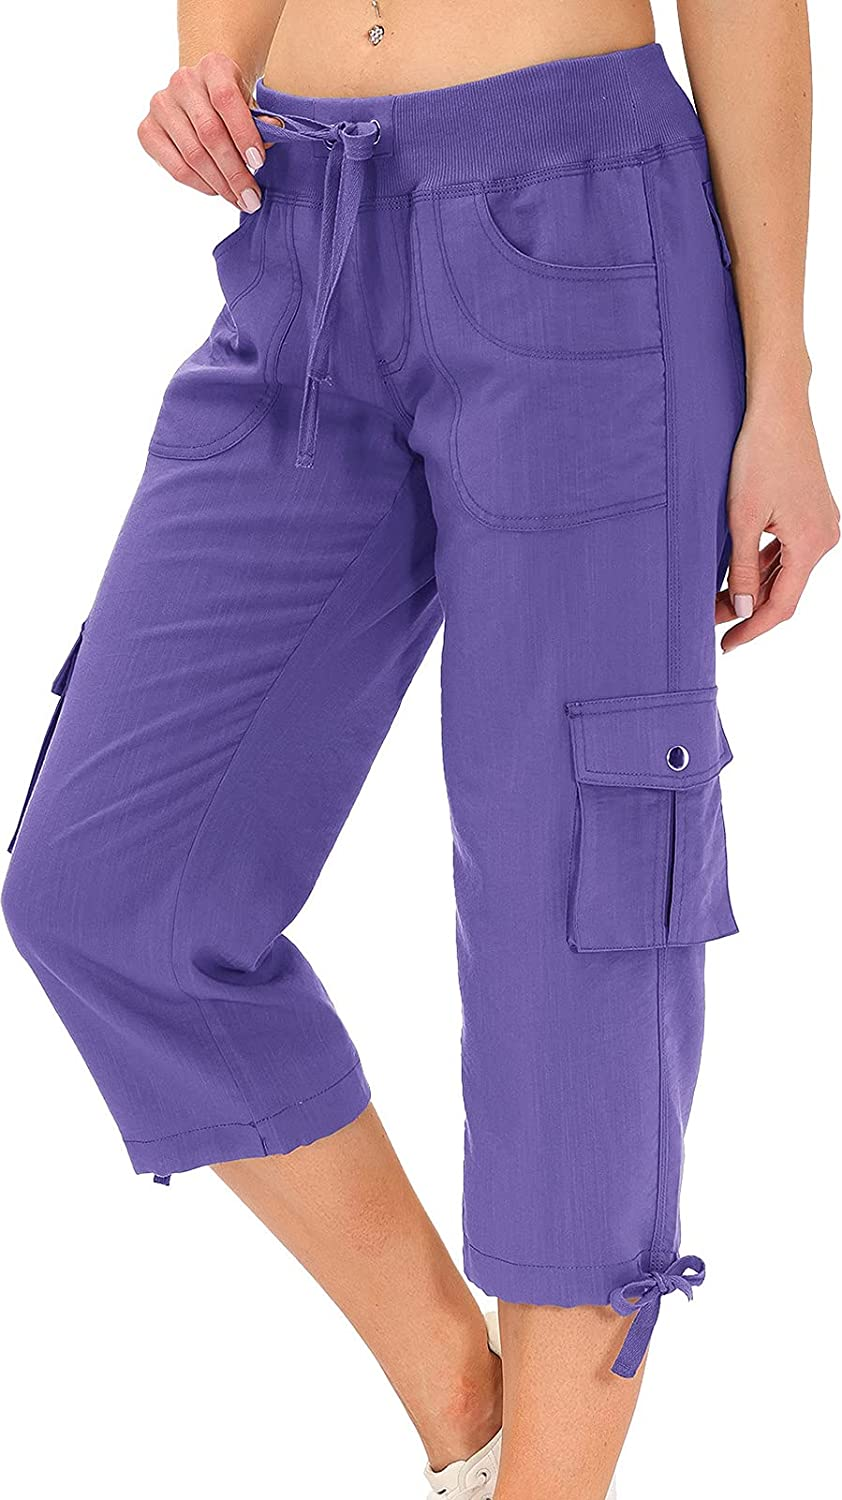 Hiking SEAL limited product Cargo Shorts for Women Dry Cam Active Pants Fit Direct store Capri